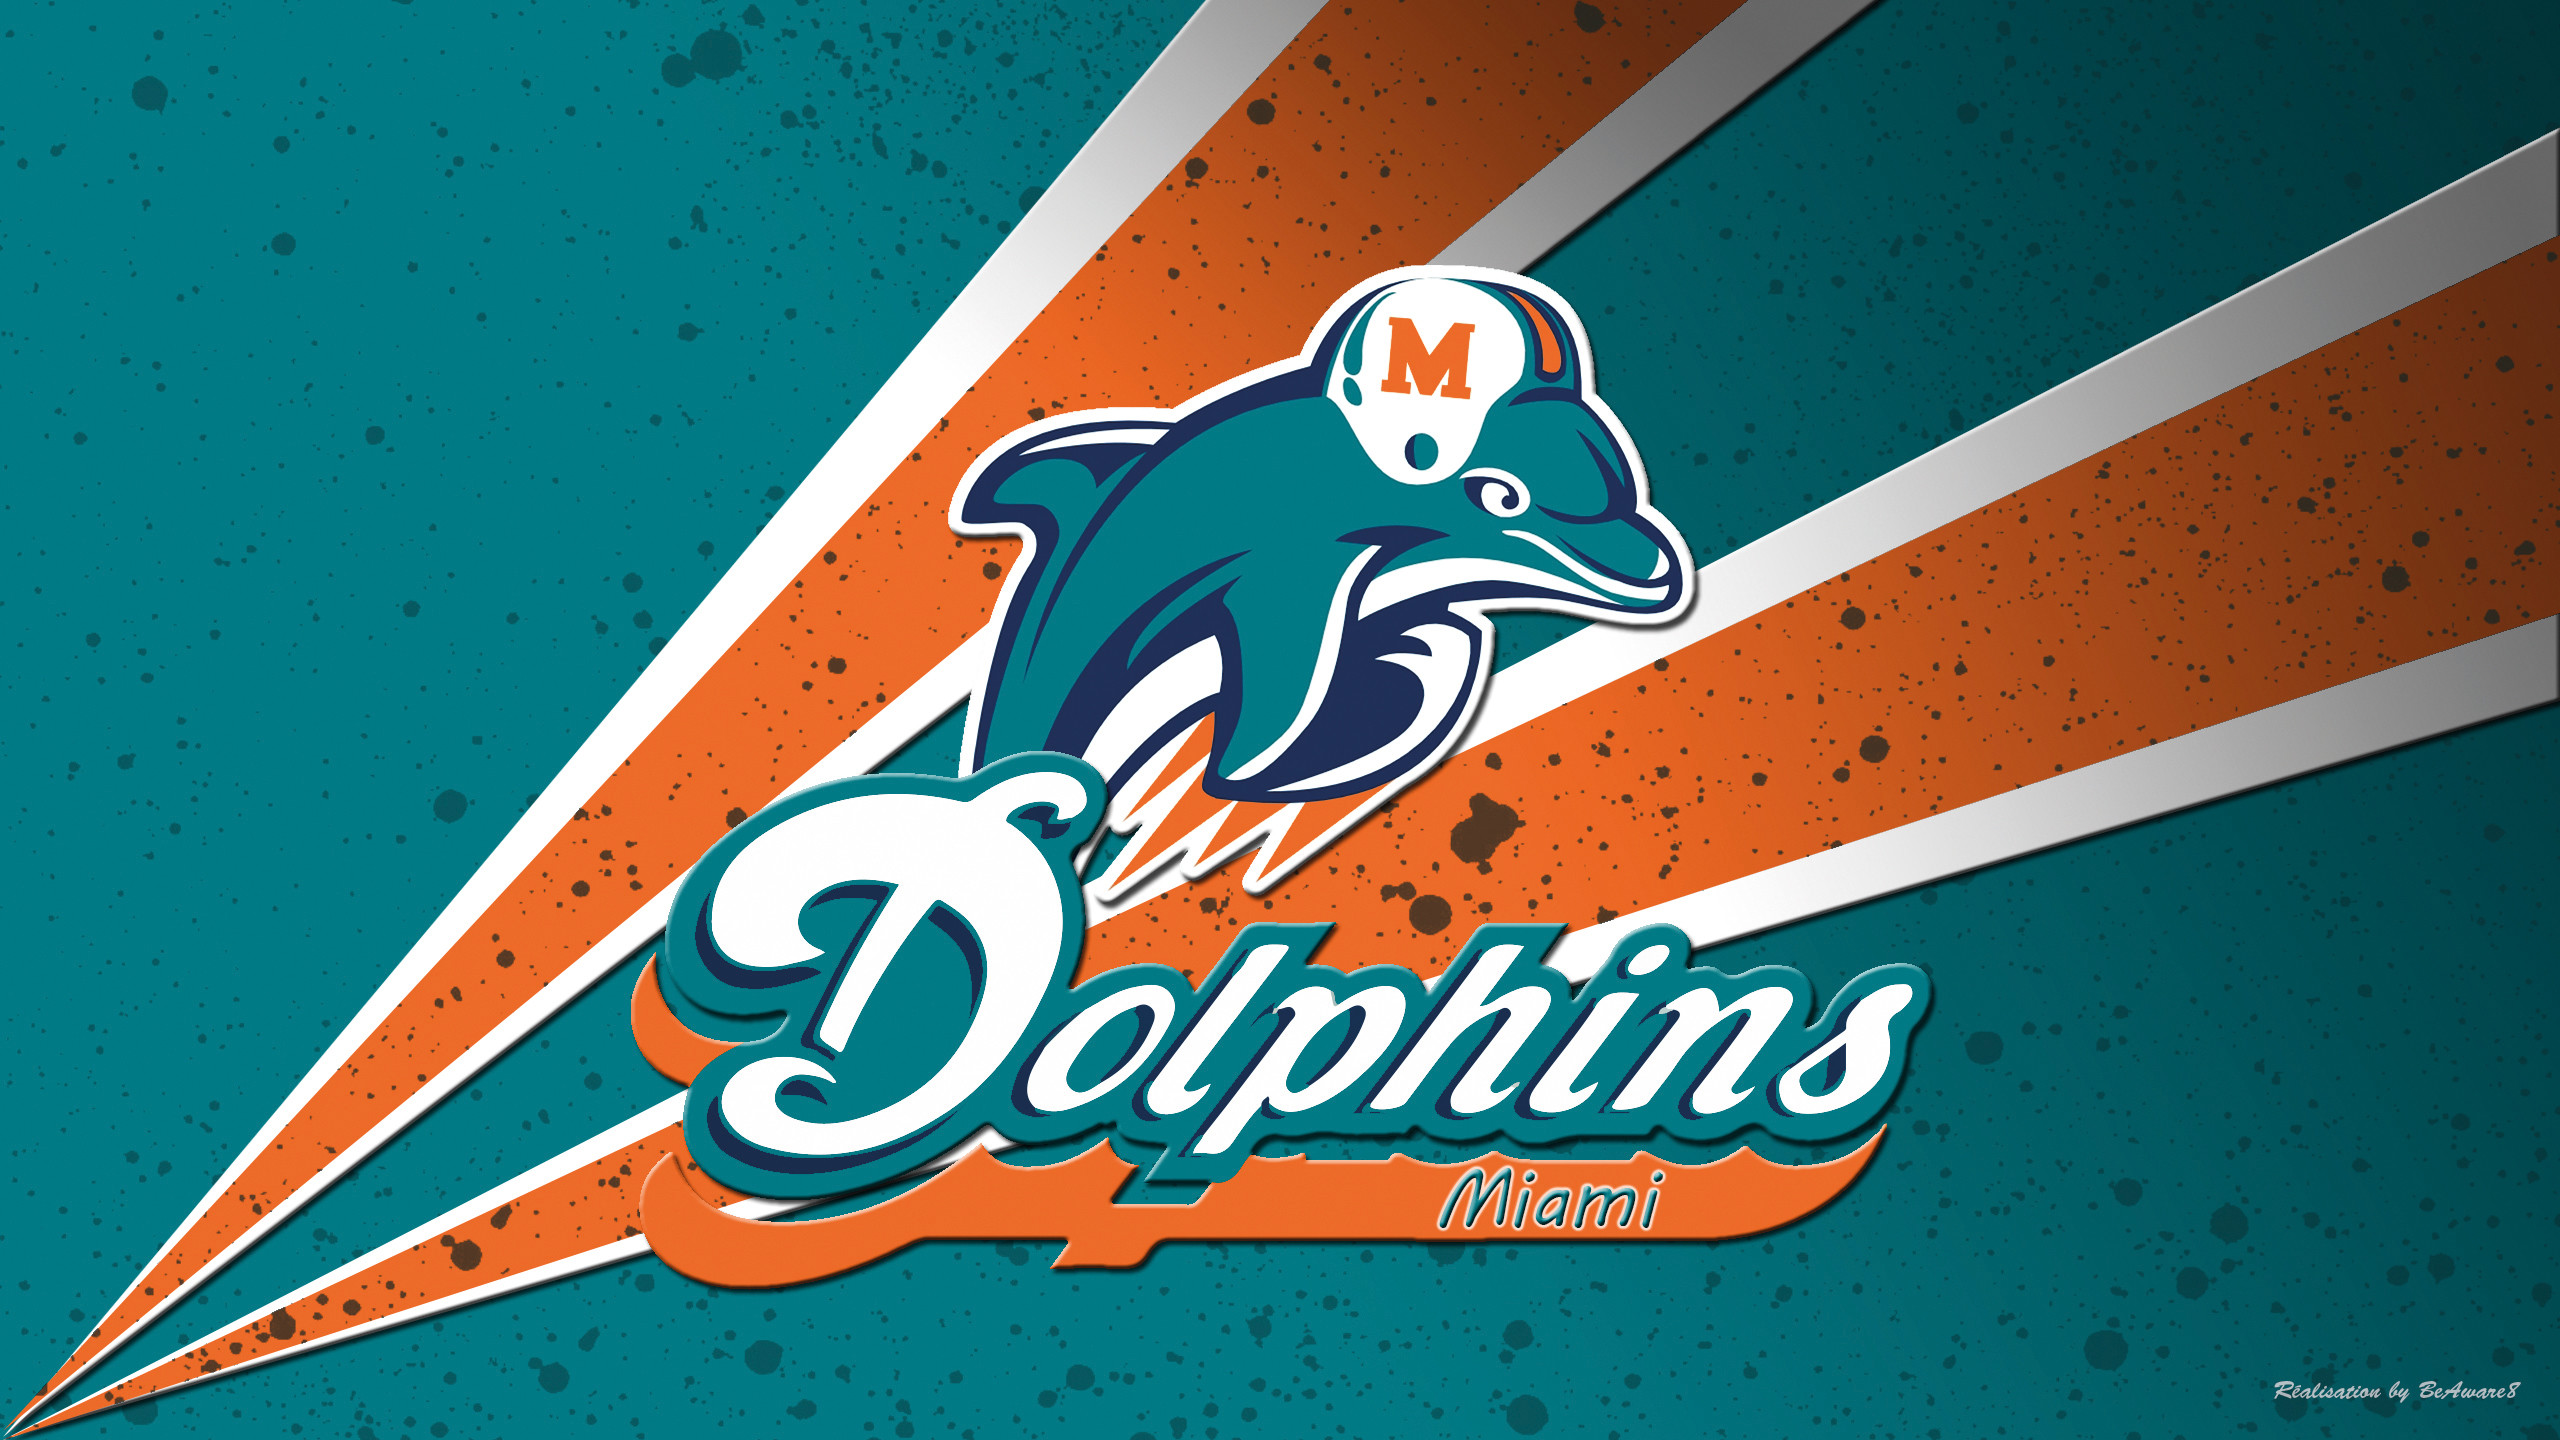 Miami dolphins hd wallpapers 75 images - Miami dolphins wallpaper ...